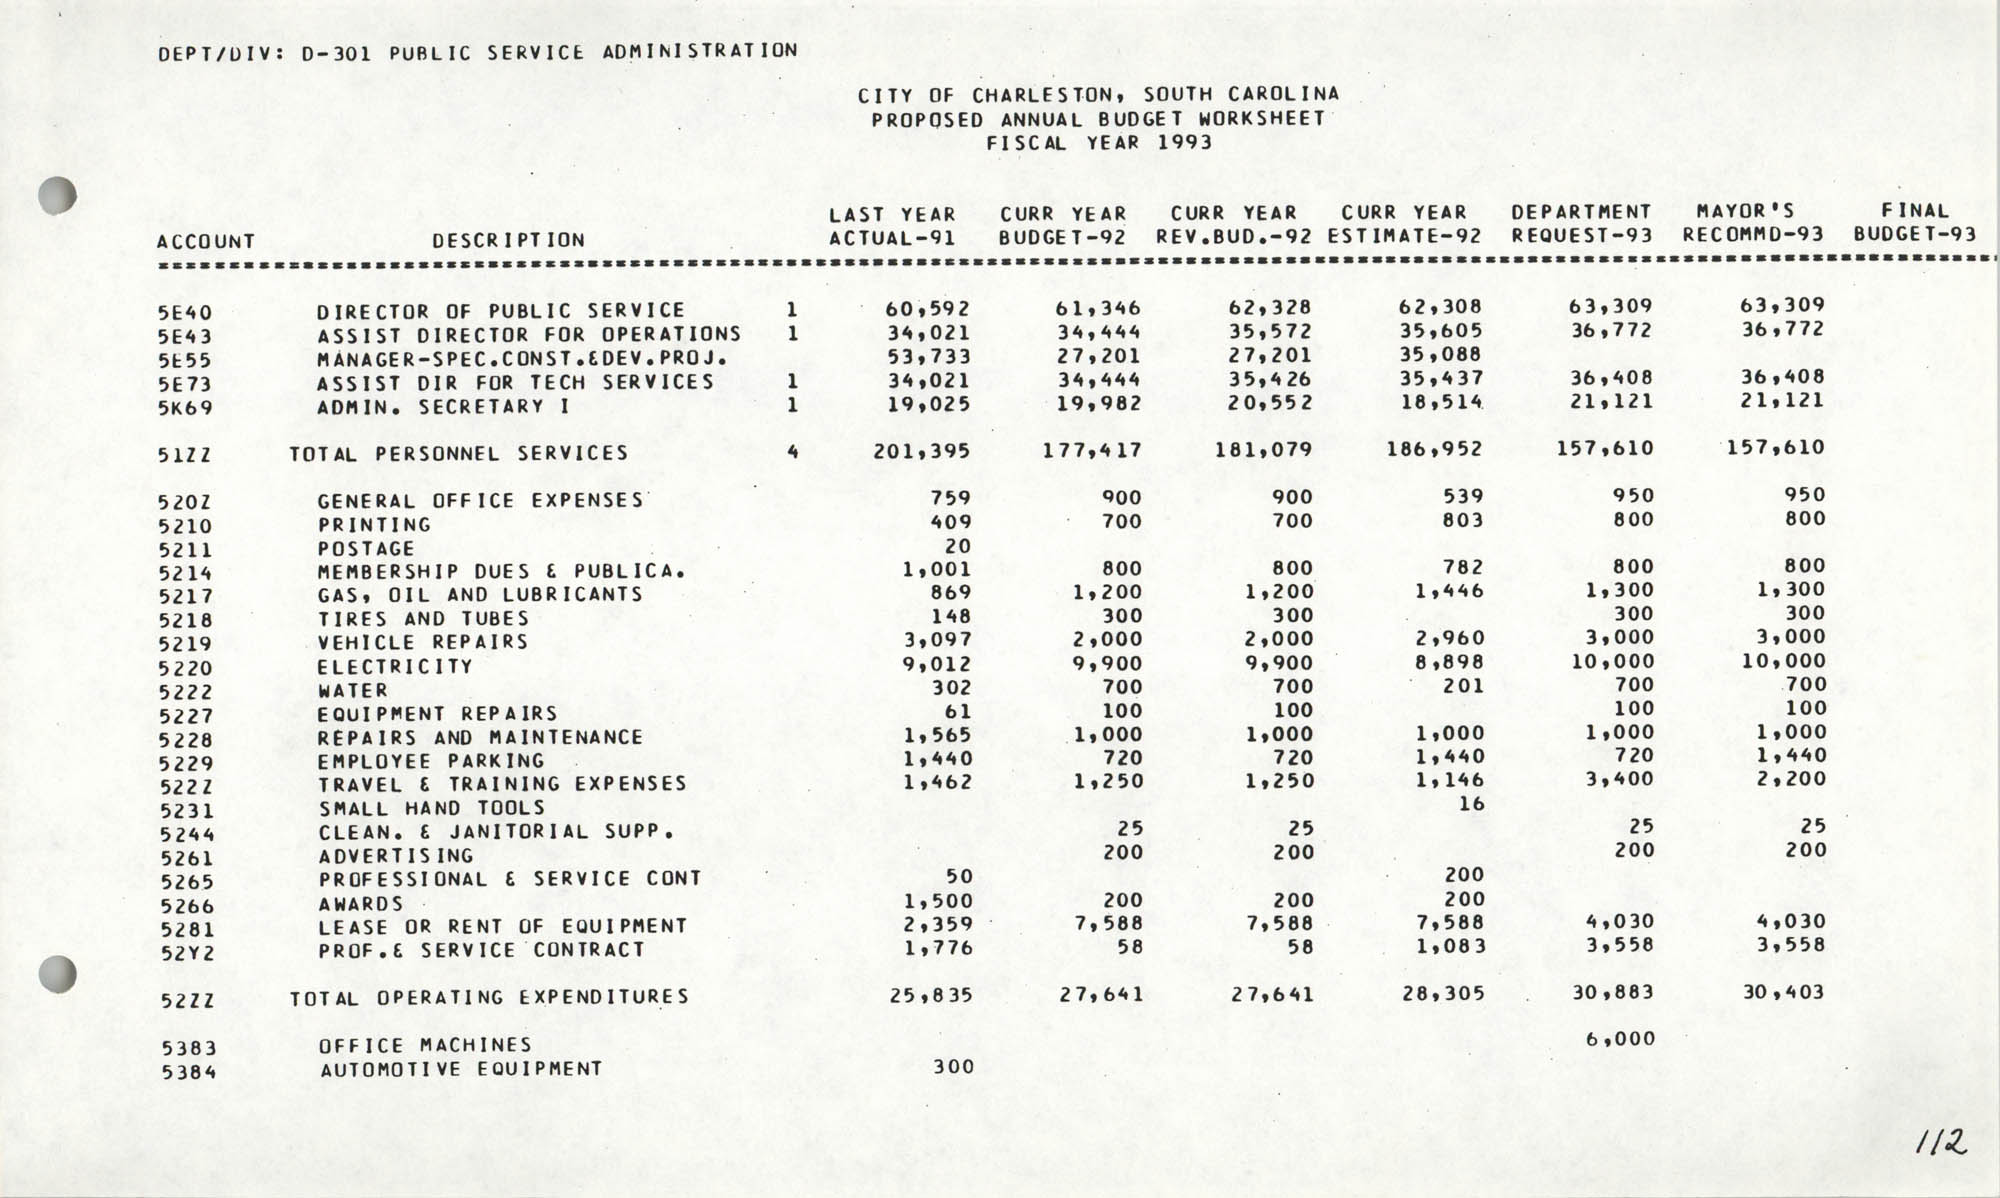 The City Council of Charleston, South Carolina, 1993 Budget, Page 112